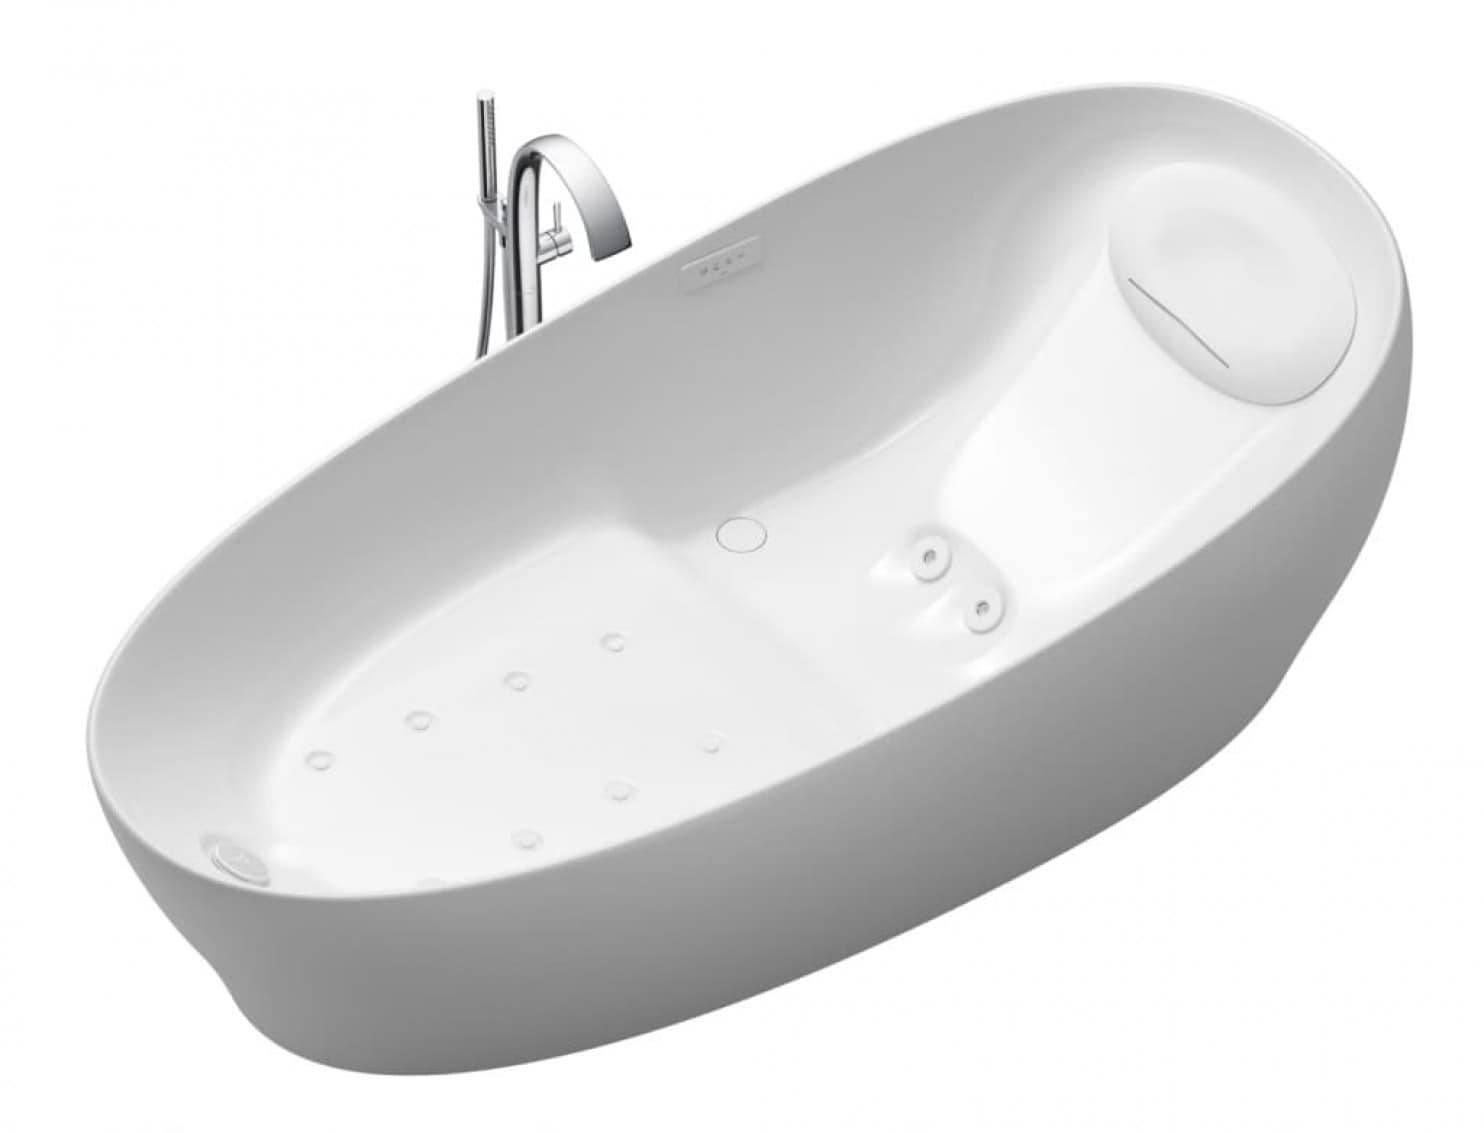 The Toto bathtub's zero dimension technology will make you feel as if you're weightless.